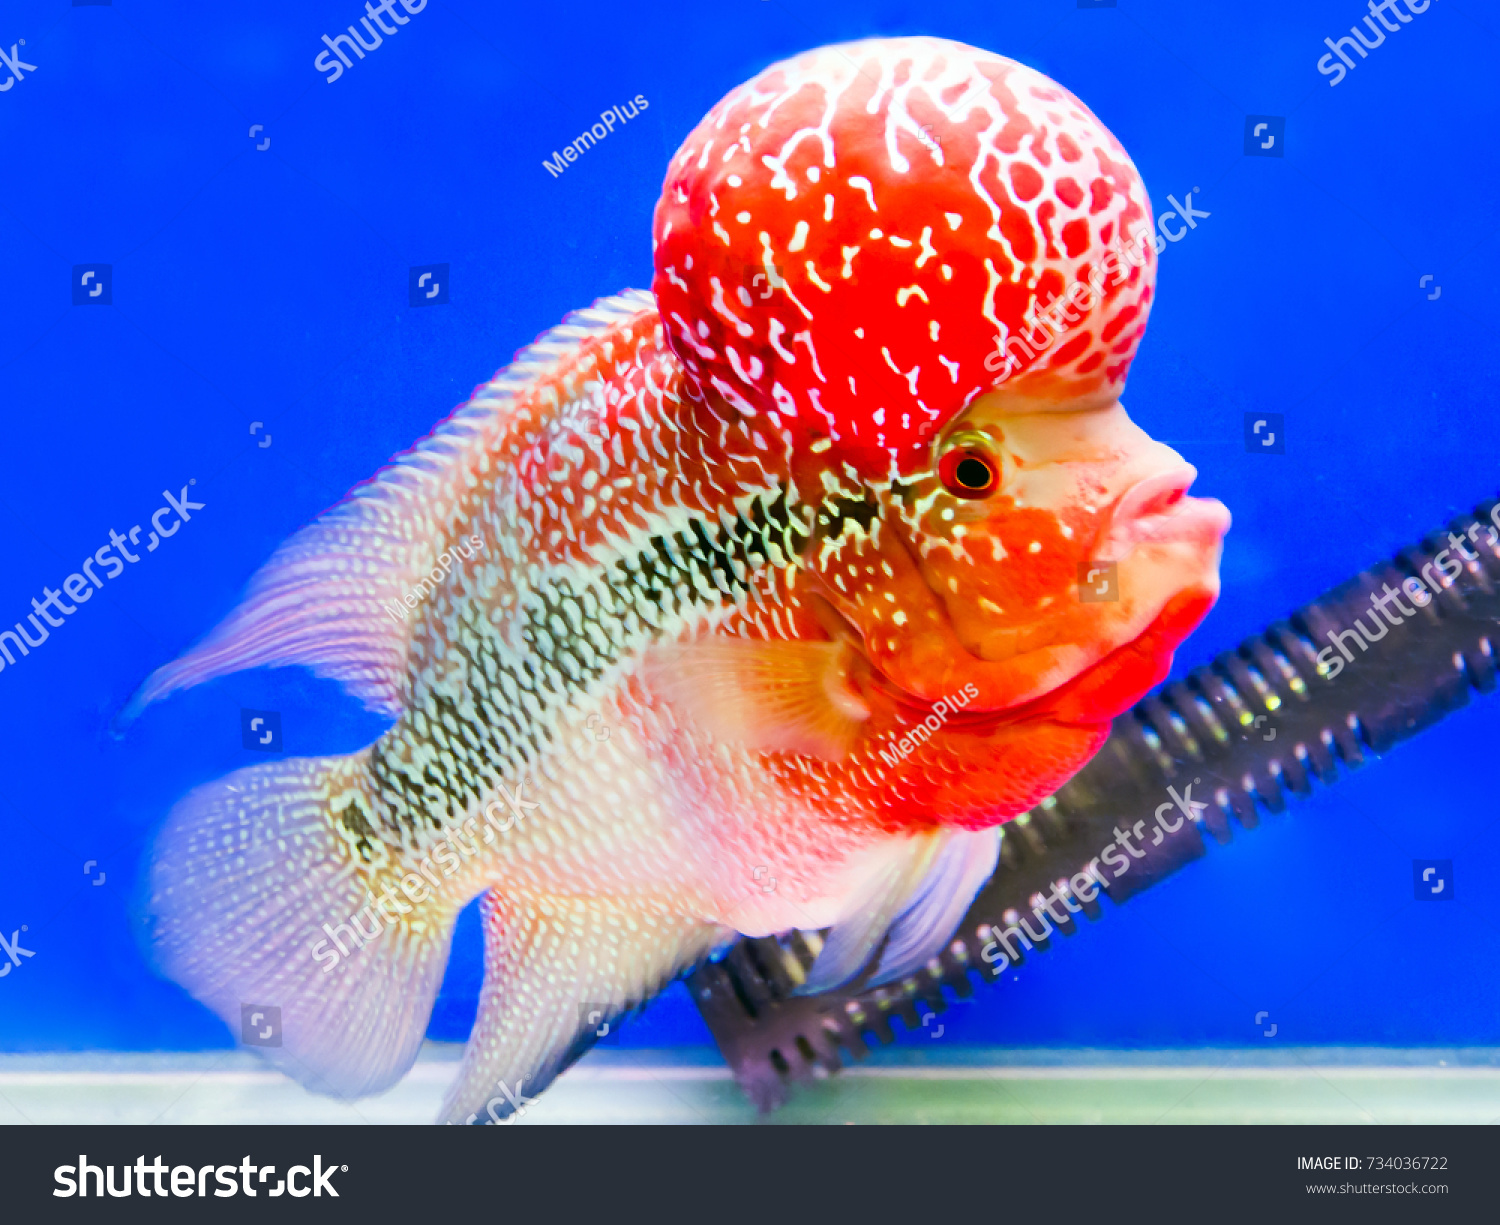 Flower Horn Fish Blue Aquarium Stock Photo (Royalty Free) 734036722 ...